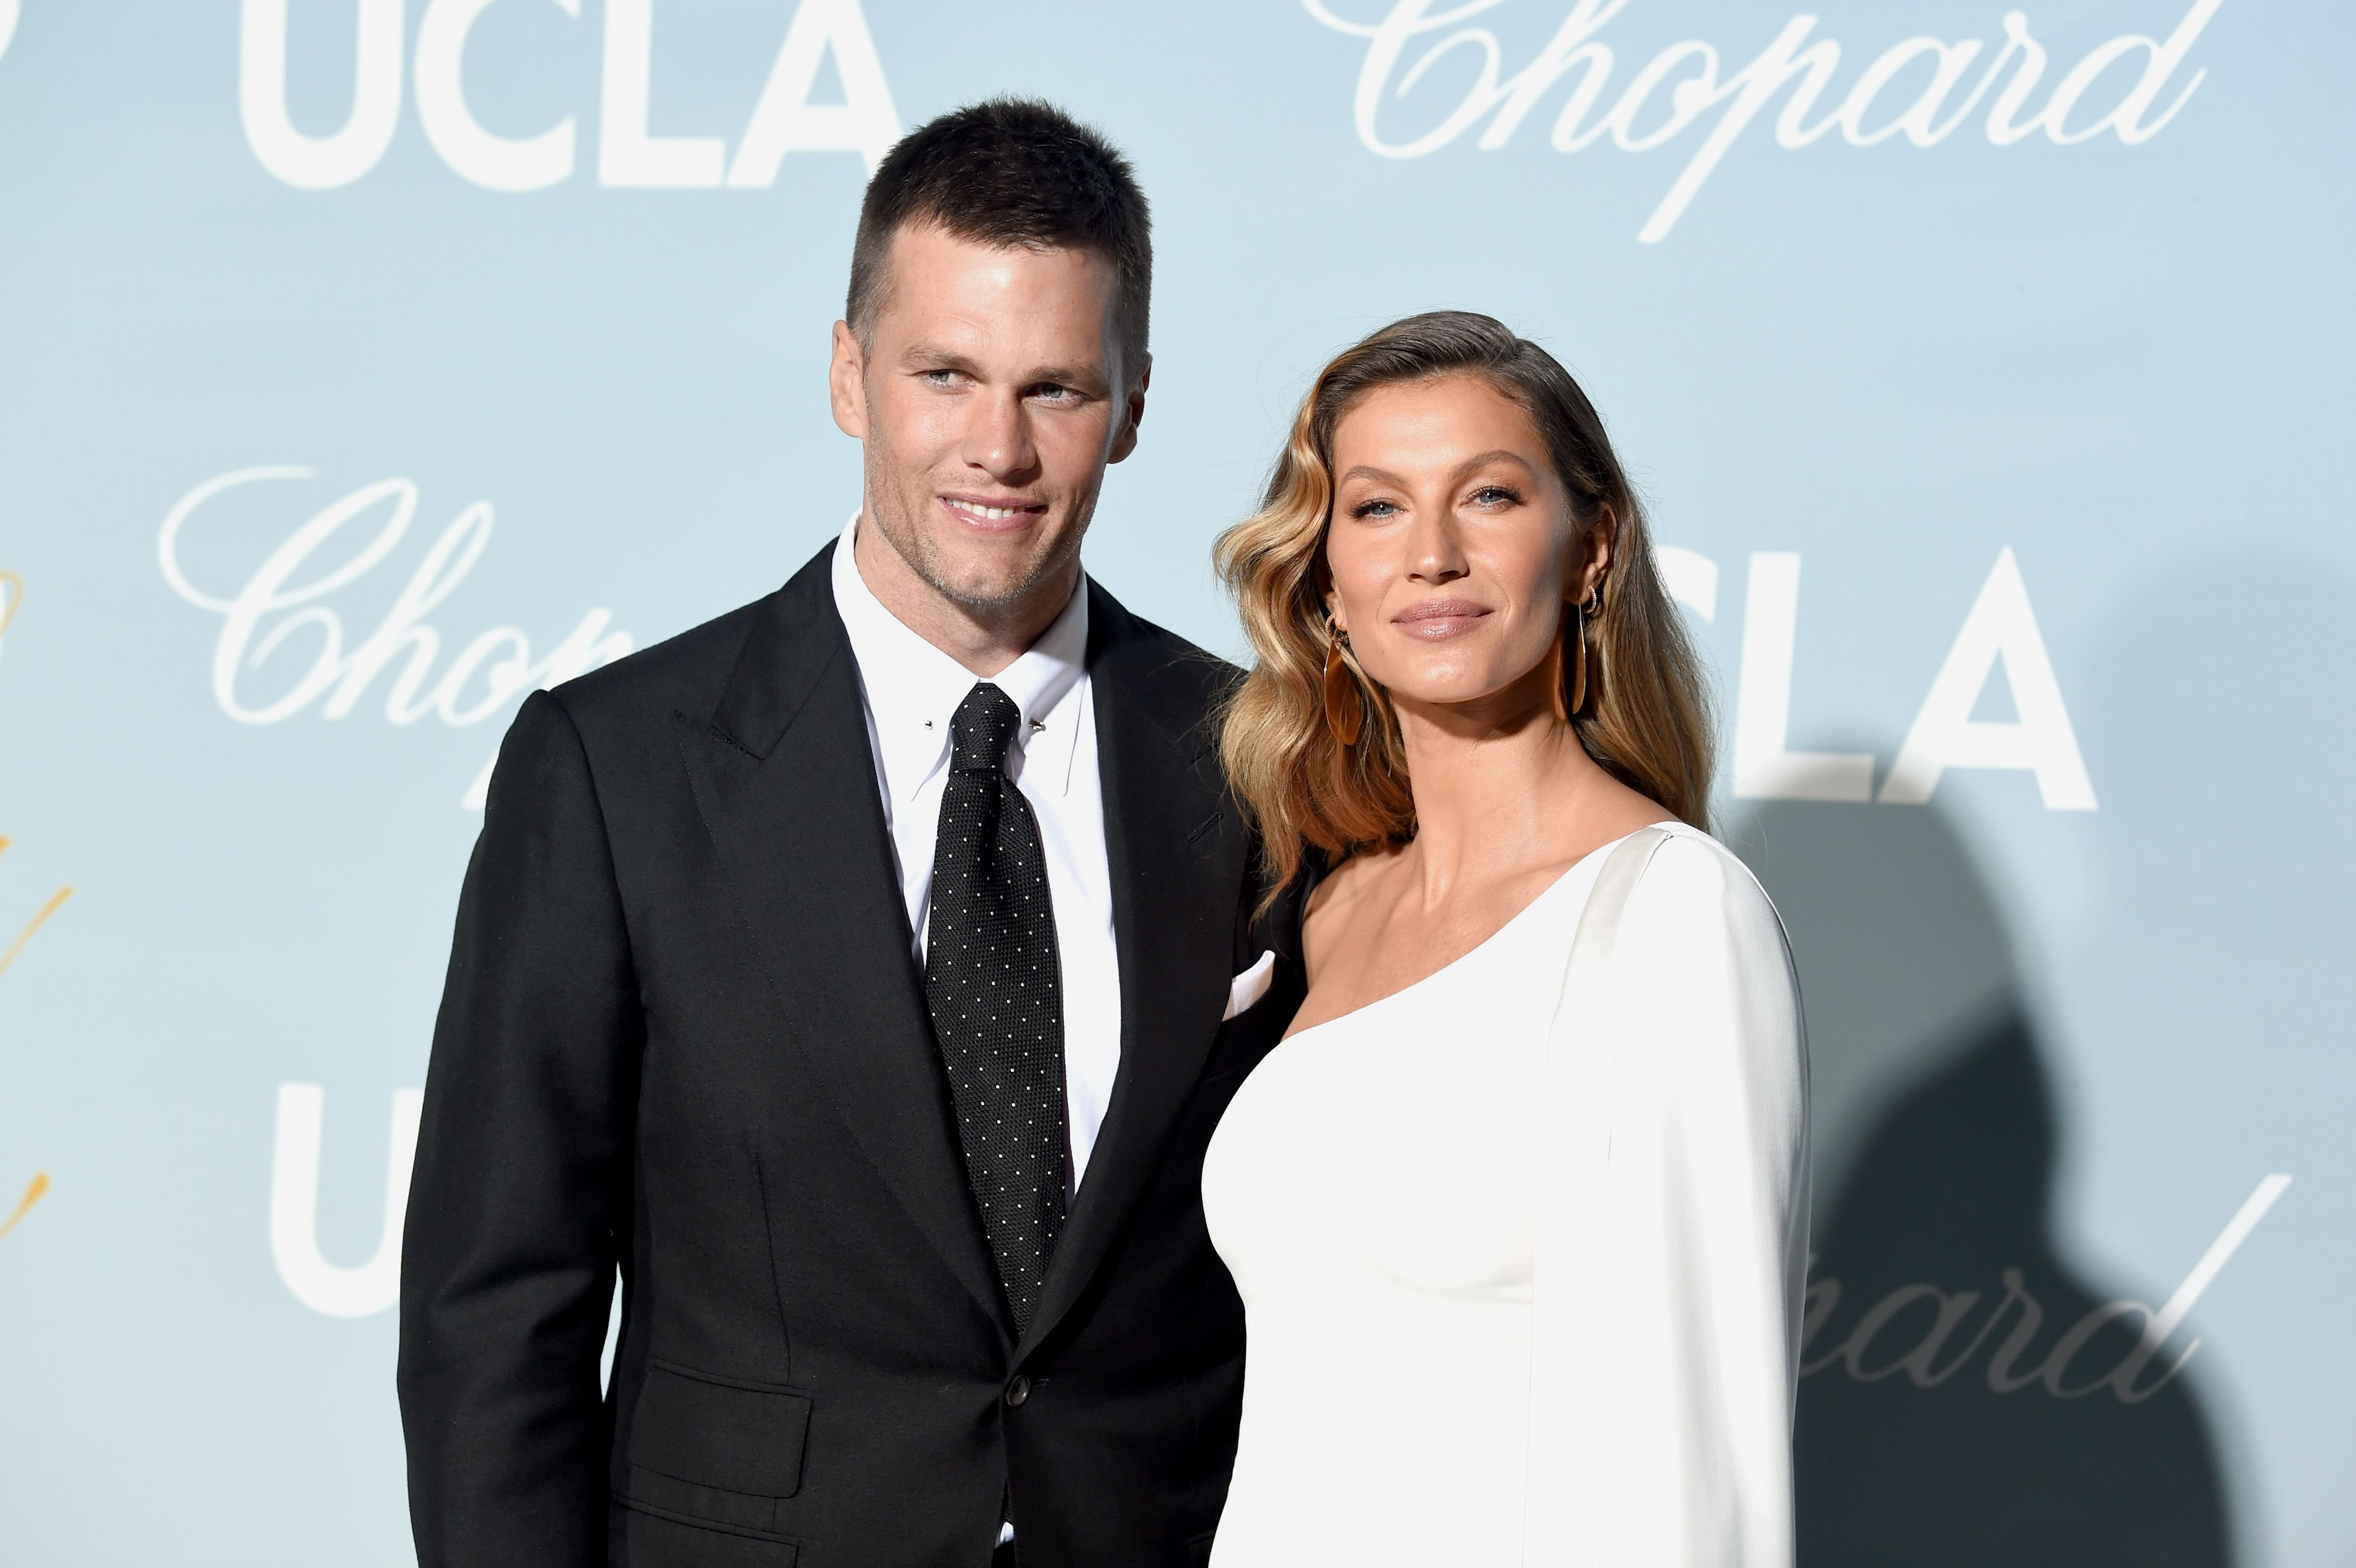 Tom Brady and Gisele Bündchen at the 2019 Hollywood For Science Gala at Private Residence on February 21, 2019 in Los Angeles, California | Photo: Getty Images